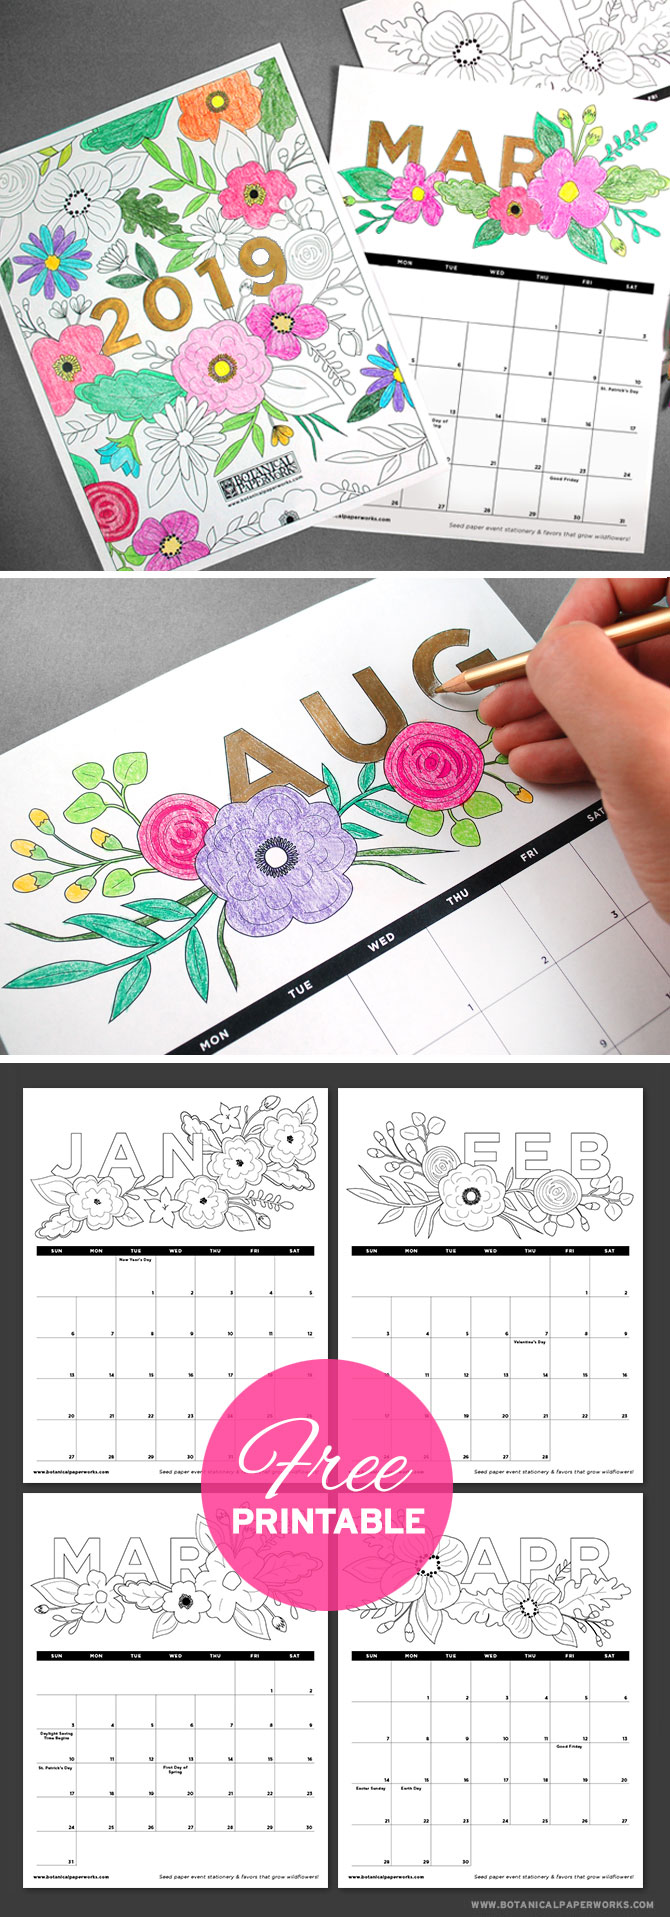 Satisfy the child within and plan for 2019 with this fun Free Printable Coloring Book Calendar! It's filled will floral illustrations that you can color in.